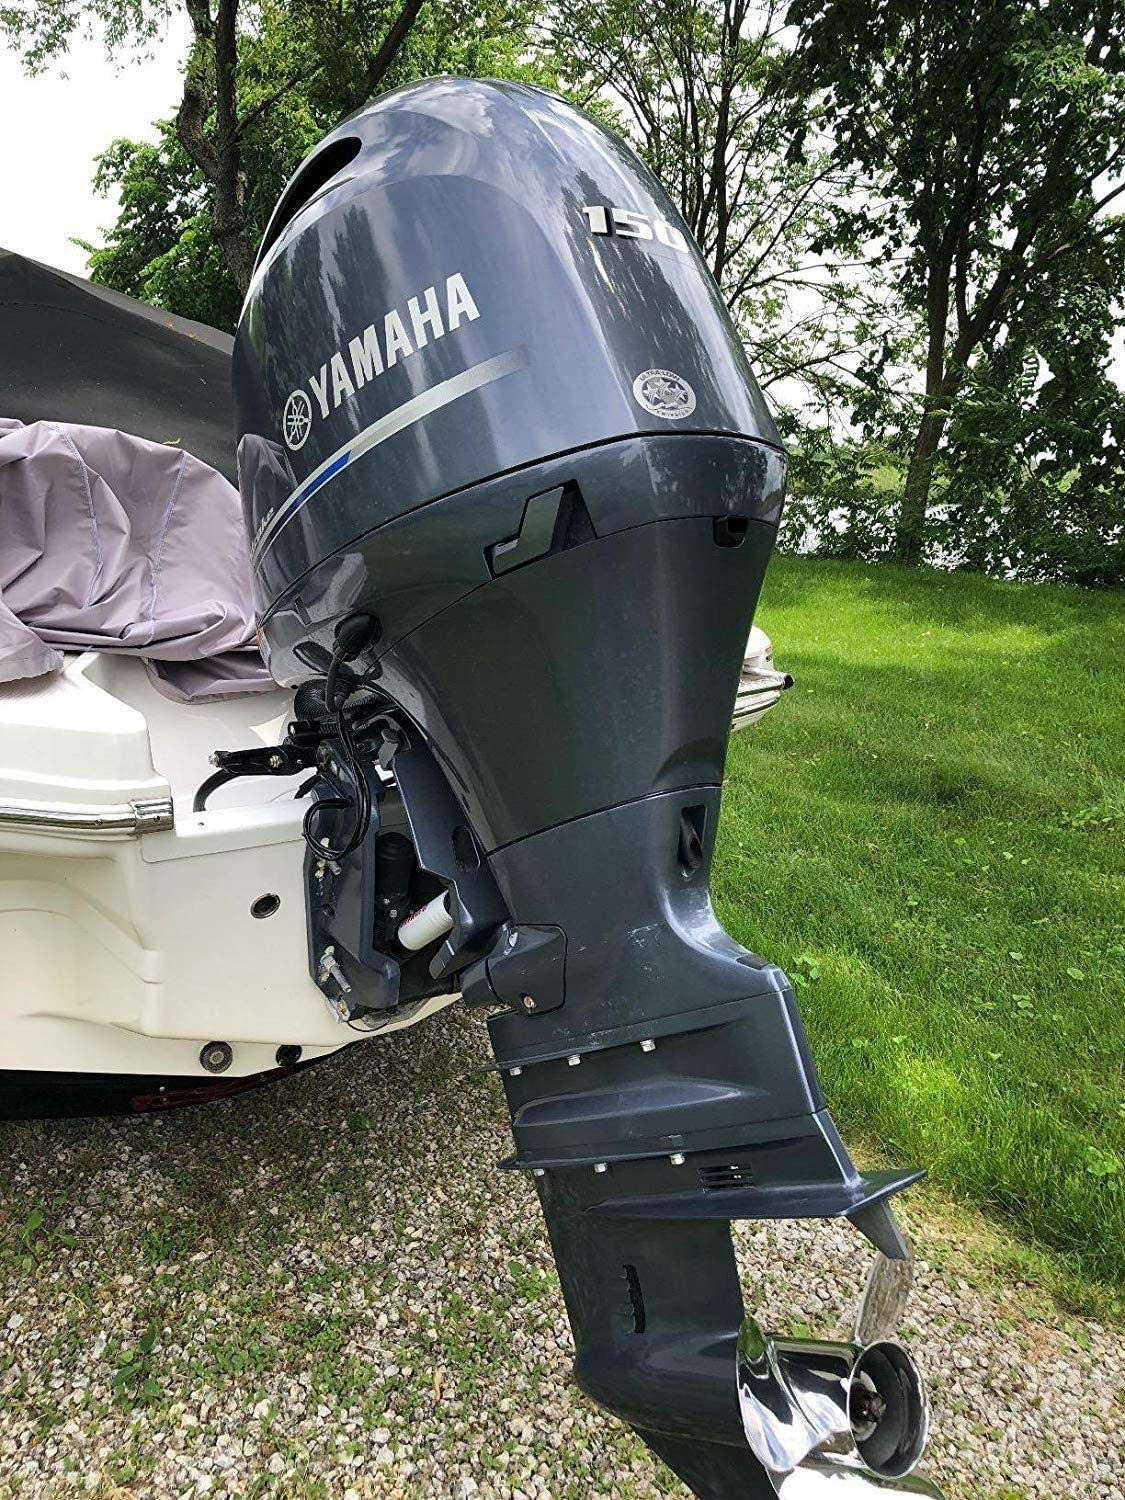 WWWANG Full Outboard Boat Motor Cover Waterproof UV Resistant Thick Polyester Fabric Outboard Motor Hood Up To 150 Horsepower Size : 210D UP-5HP